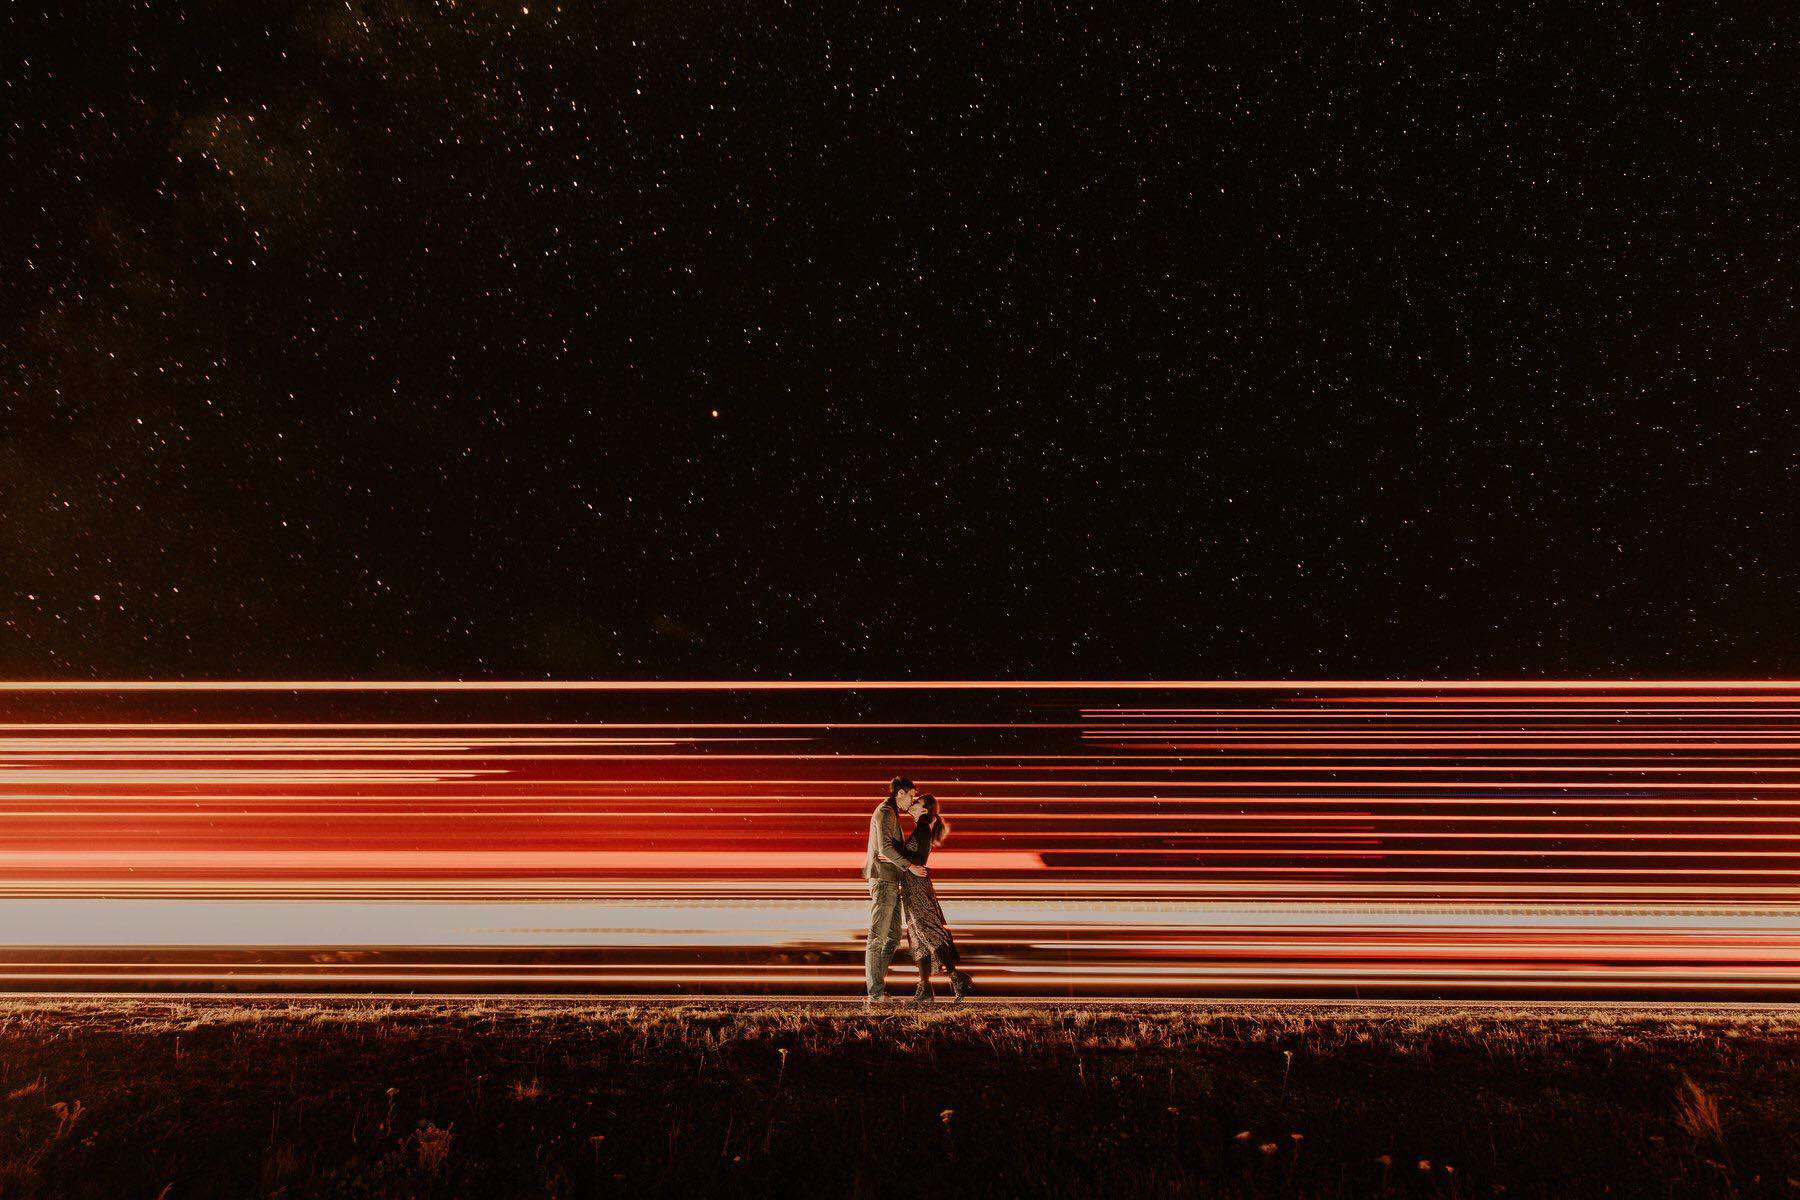 Long exposure photography of a couple at night